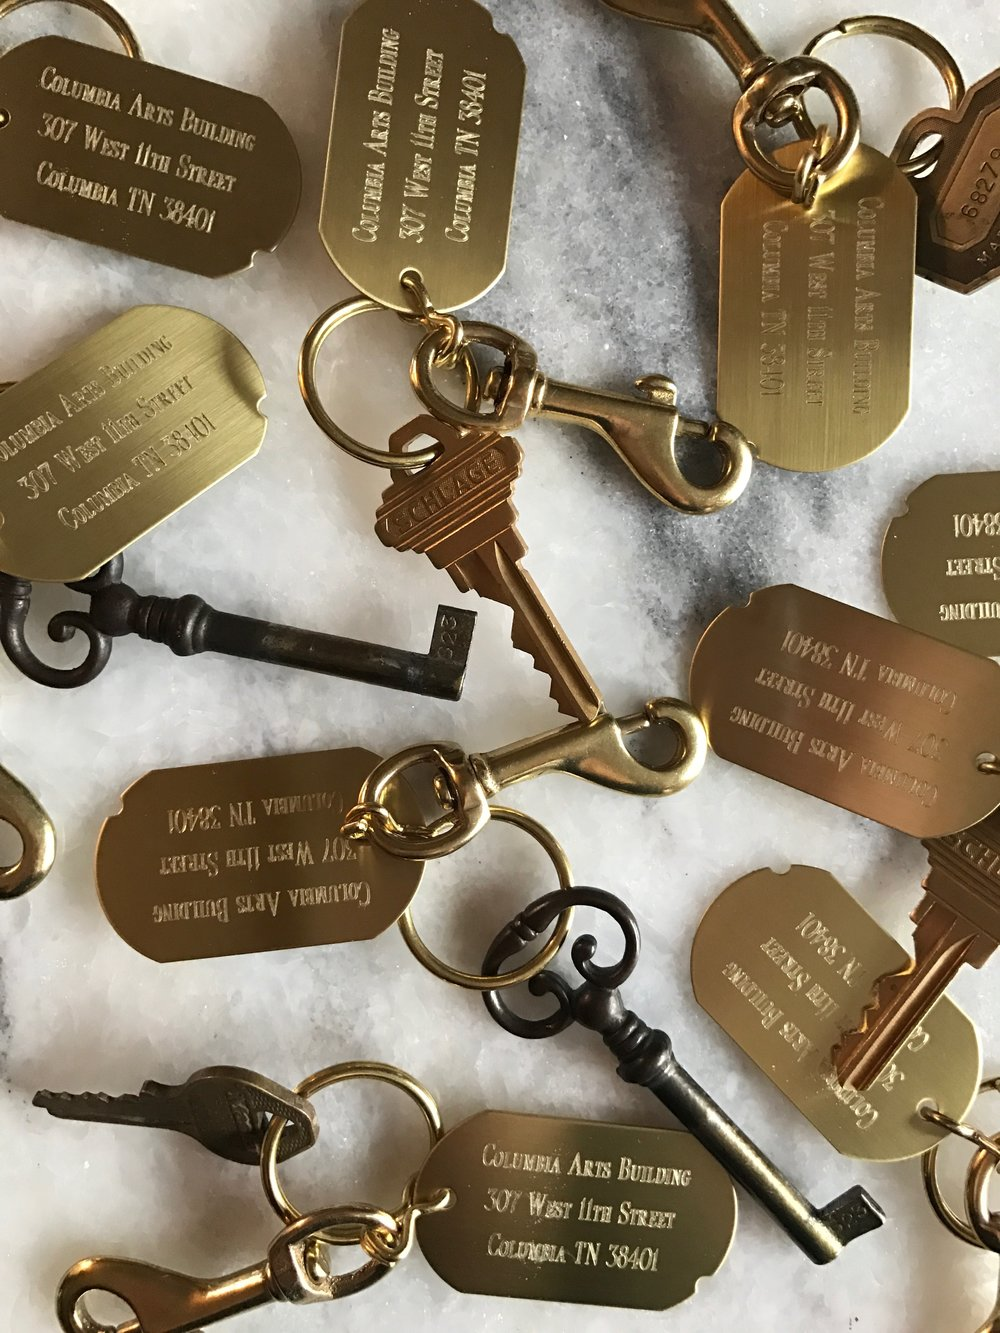 Each artist/tenant will be provided with our signature key tag  for their studio access keys.